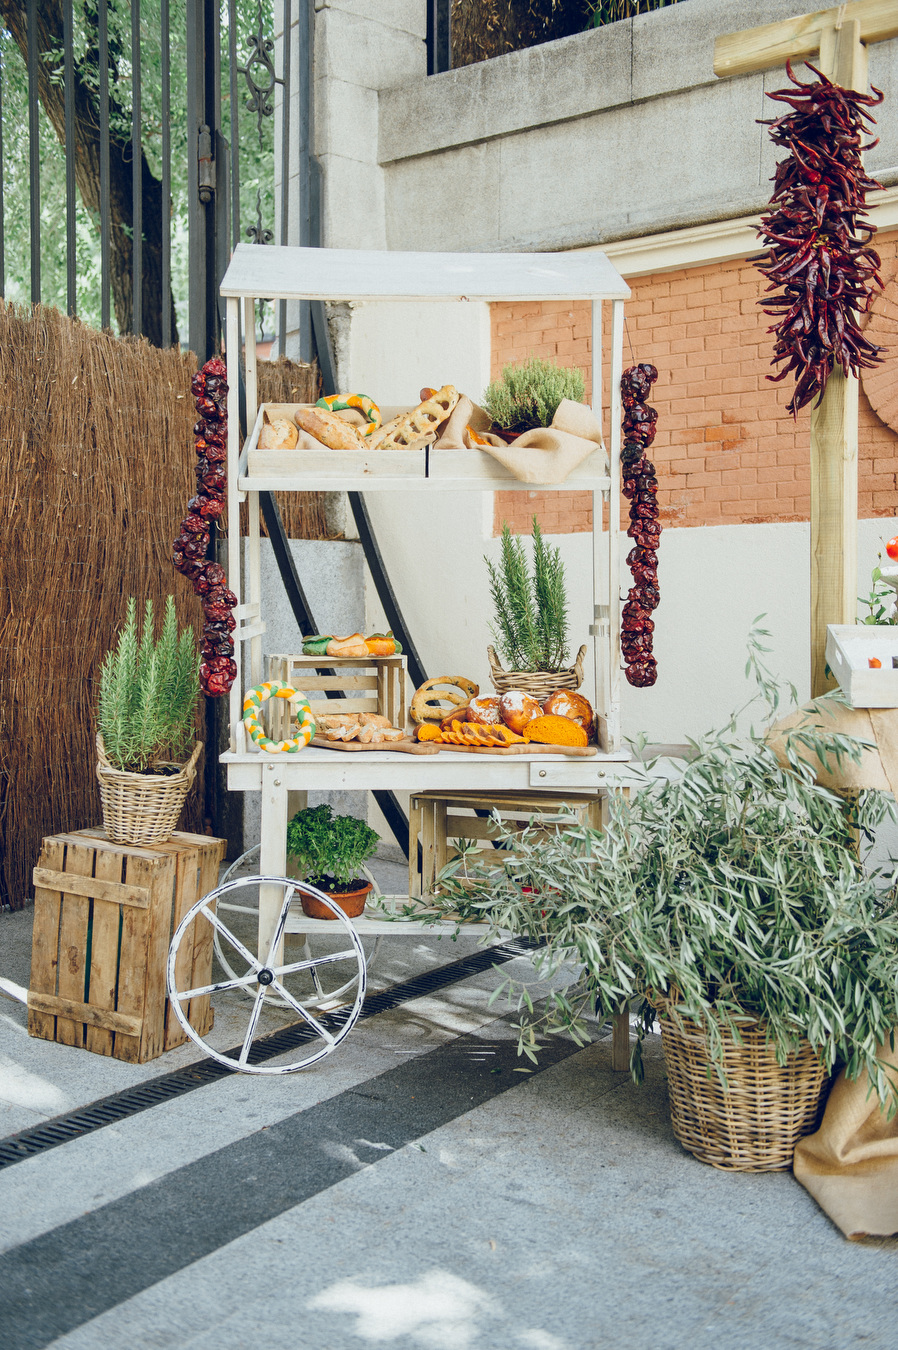 calista-one-lista-de-bodas-online-blog-de-bodas-calista-one-summer-party-2016-pomodoro-3